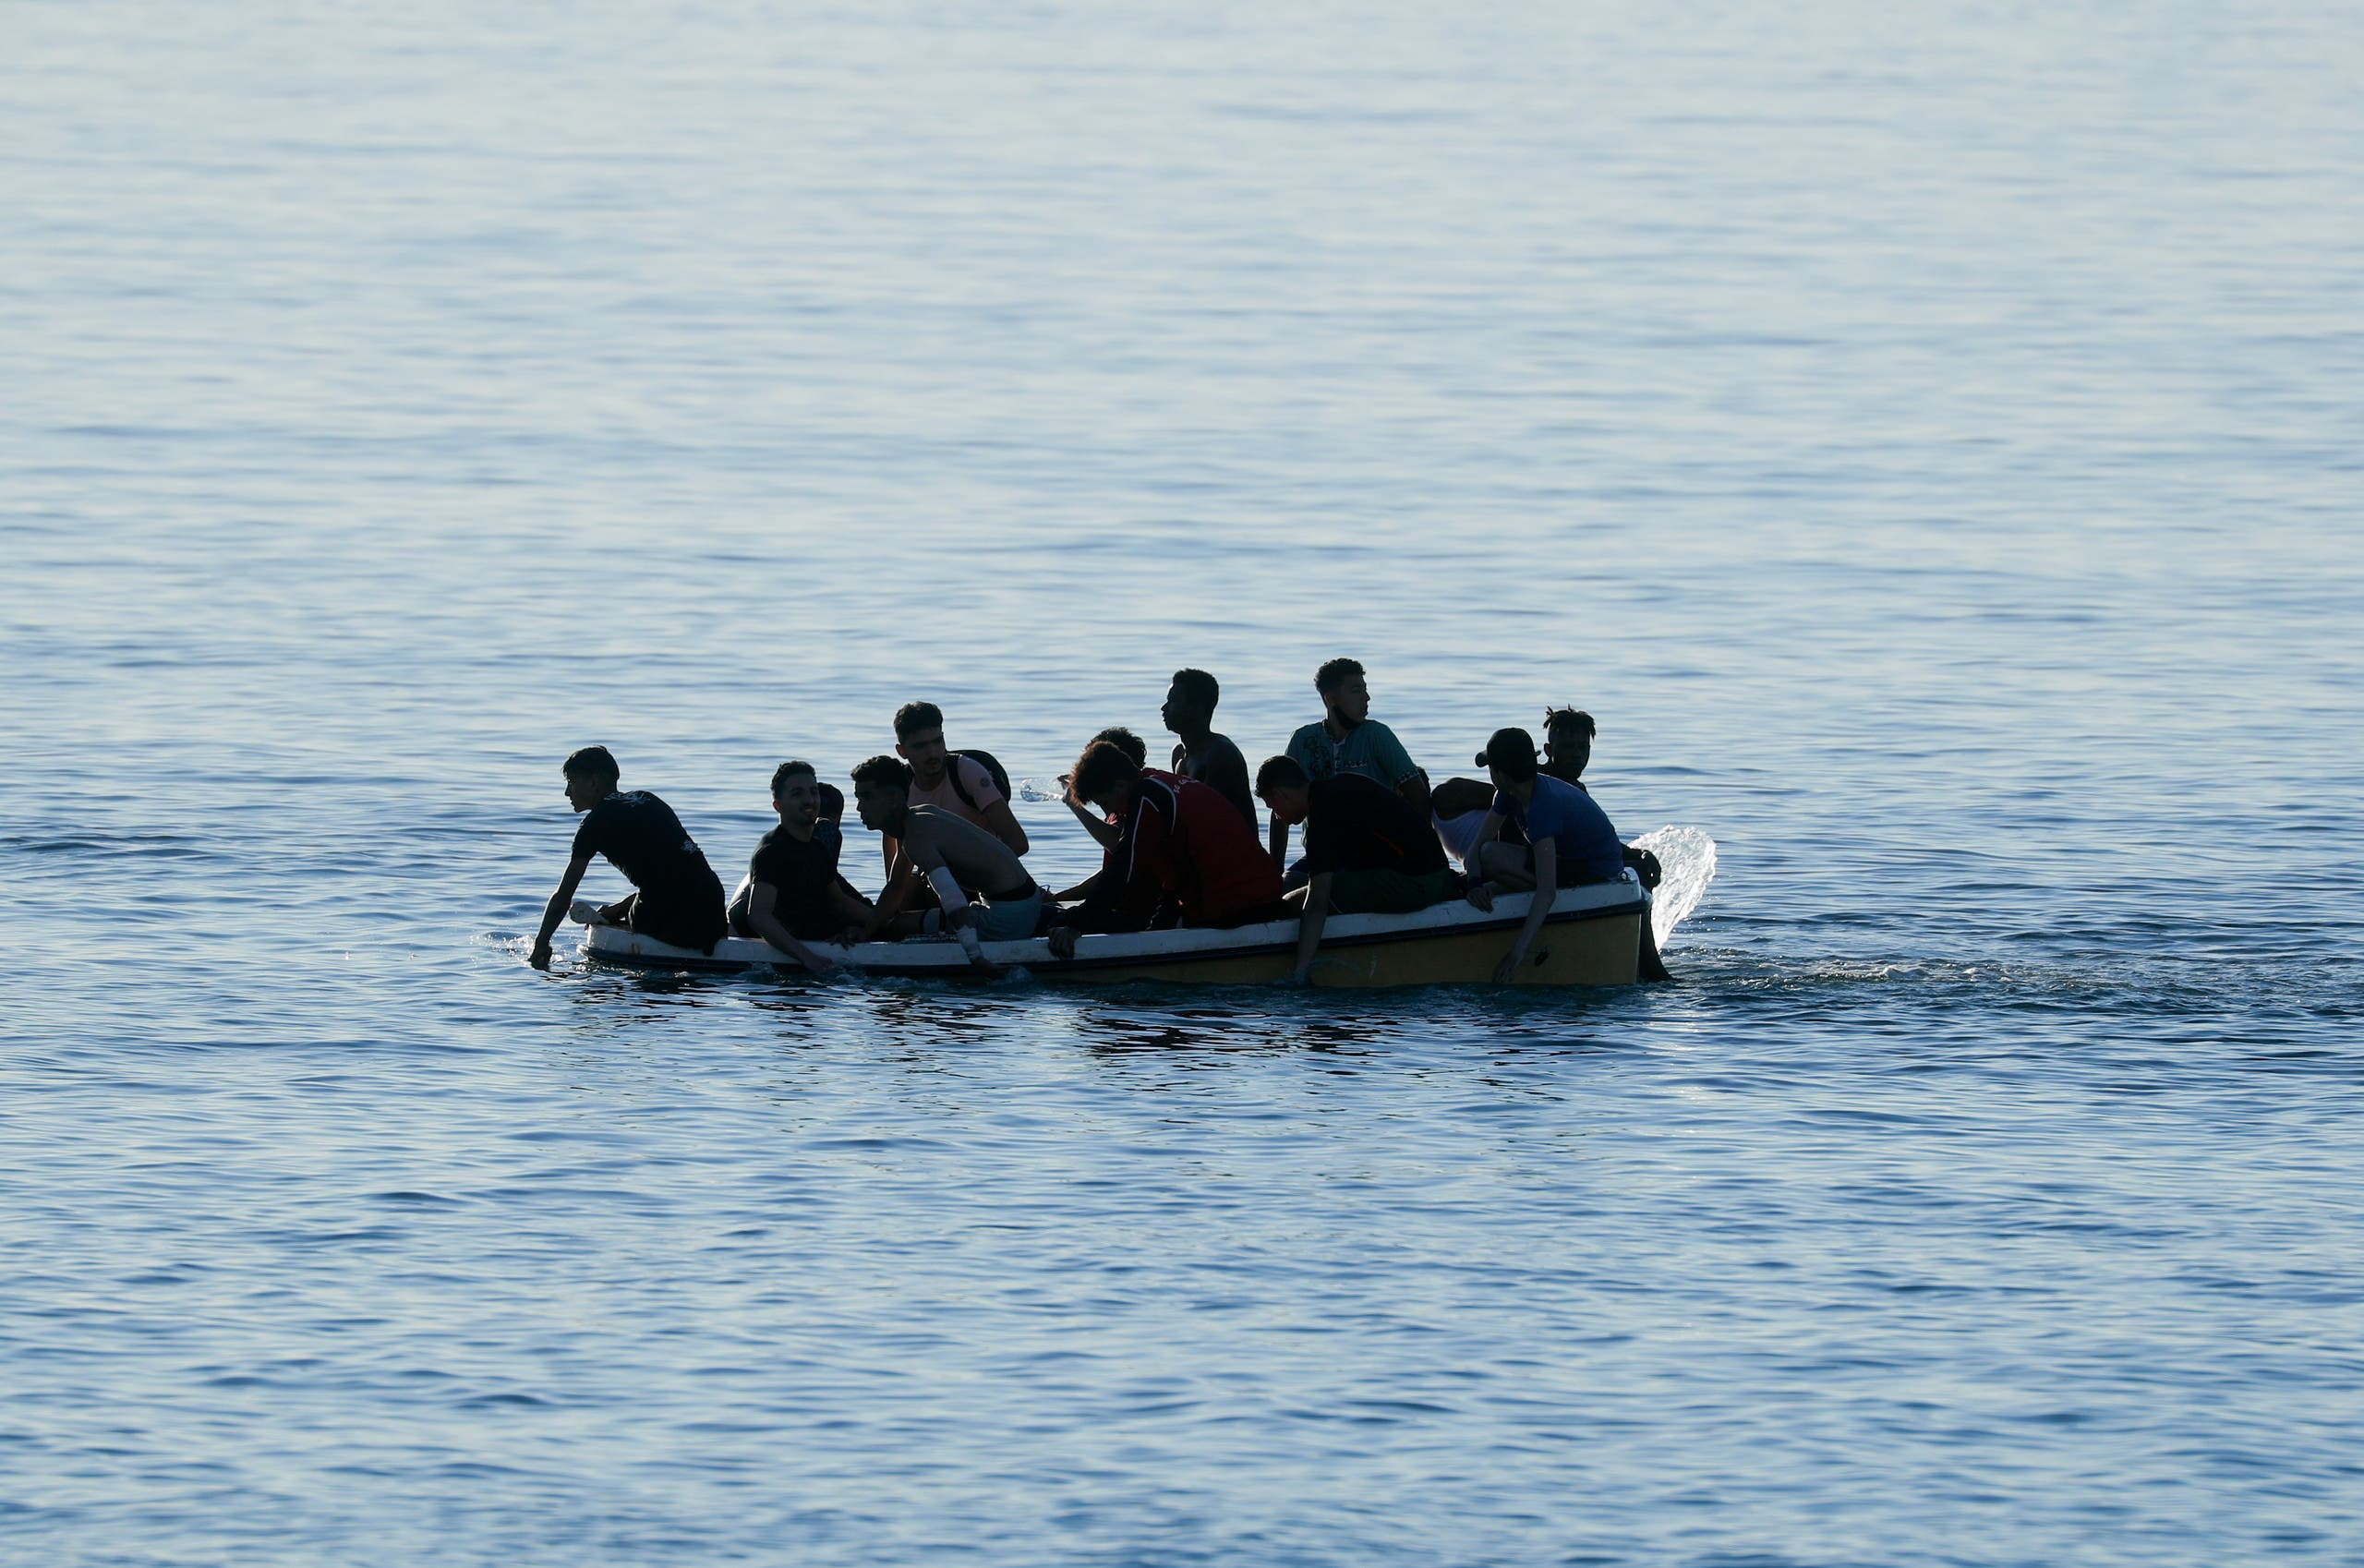 Moroccan citizens arrive on a boat at El Tarajal beach, near the fence between the Spanish-Moroccan border, after thousands of migrants swam across the border on Monday, in Ceuta, Spain, May 19, 2021. (Reuters)